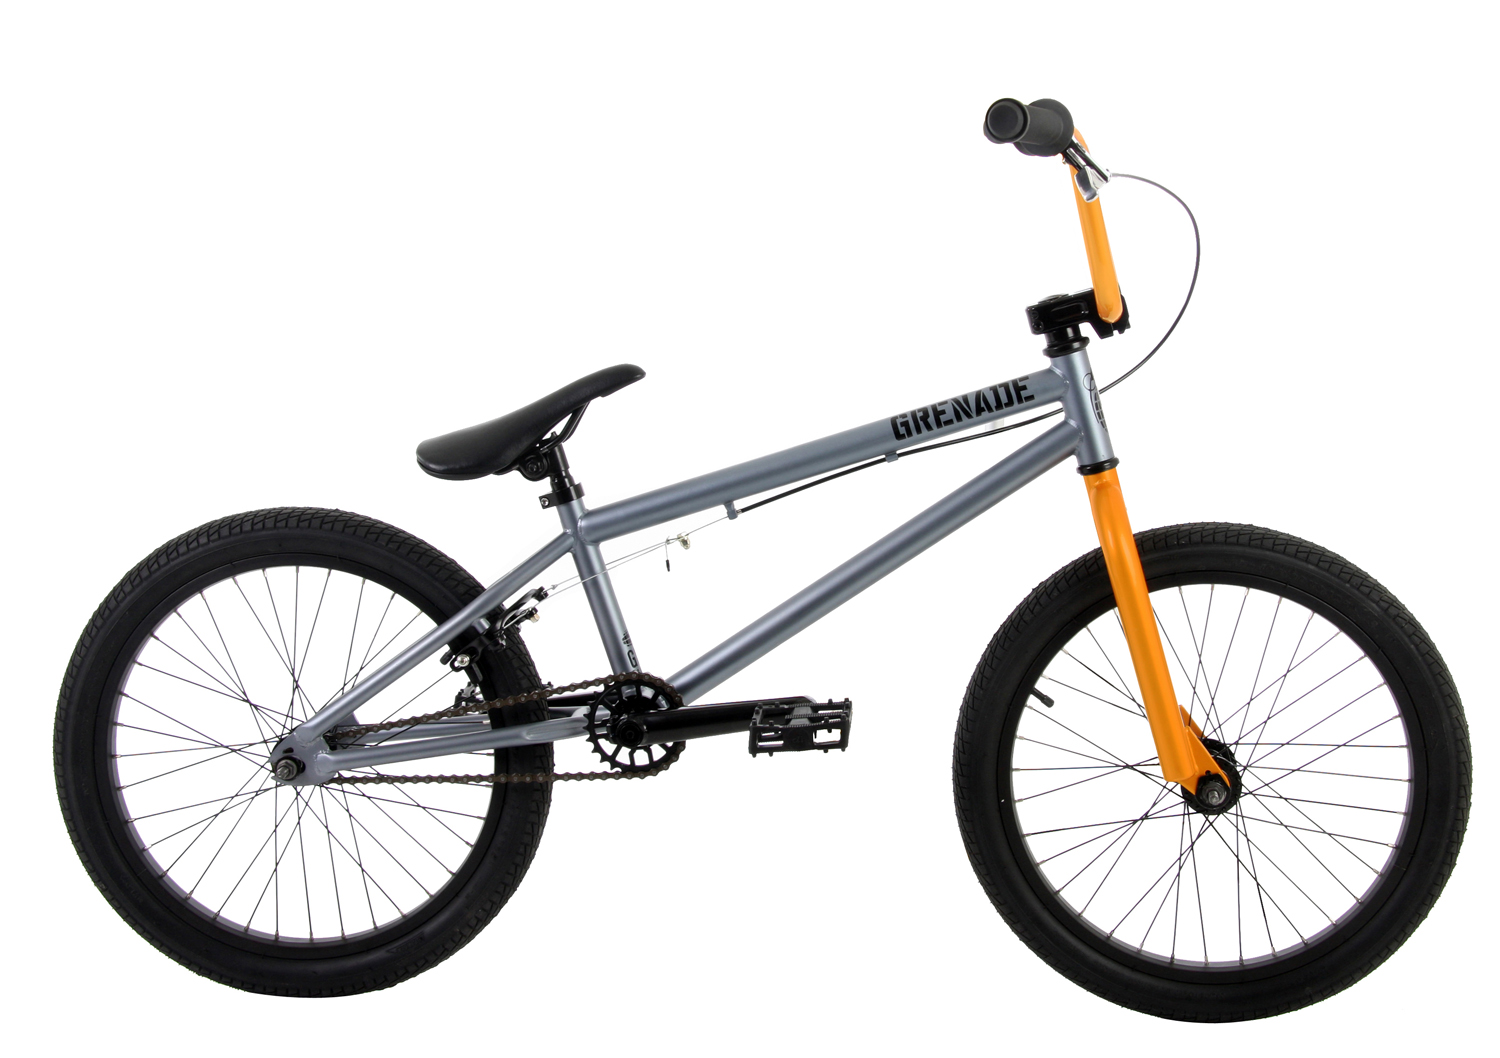 Grenade B2 Bmx Bike 20in Mens